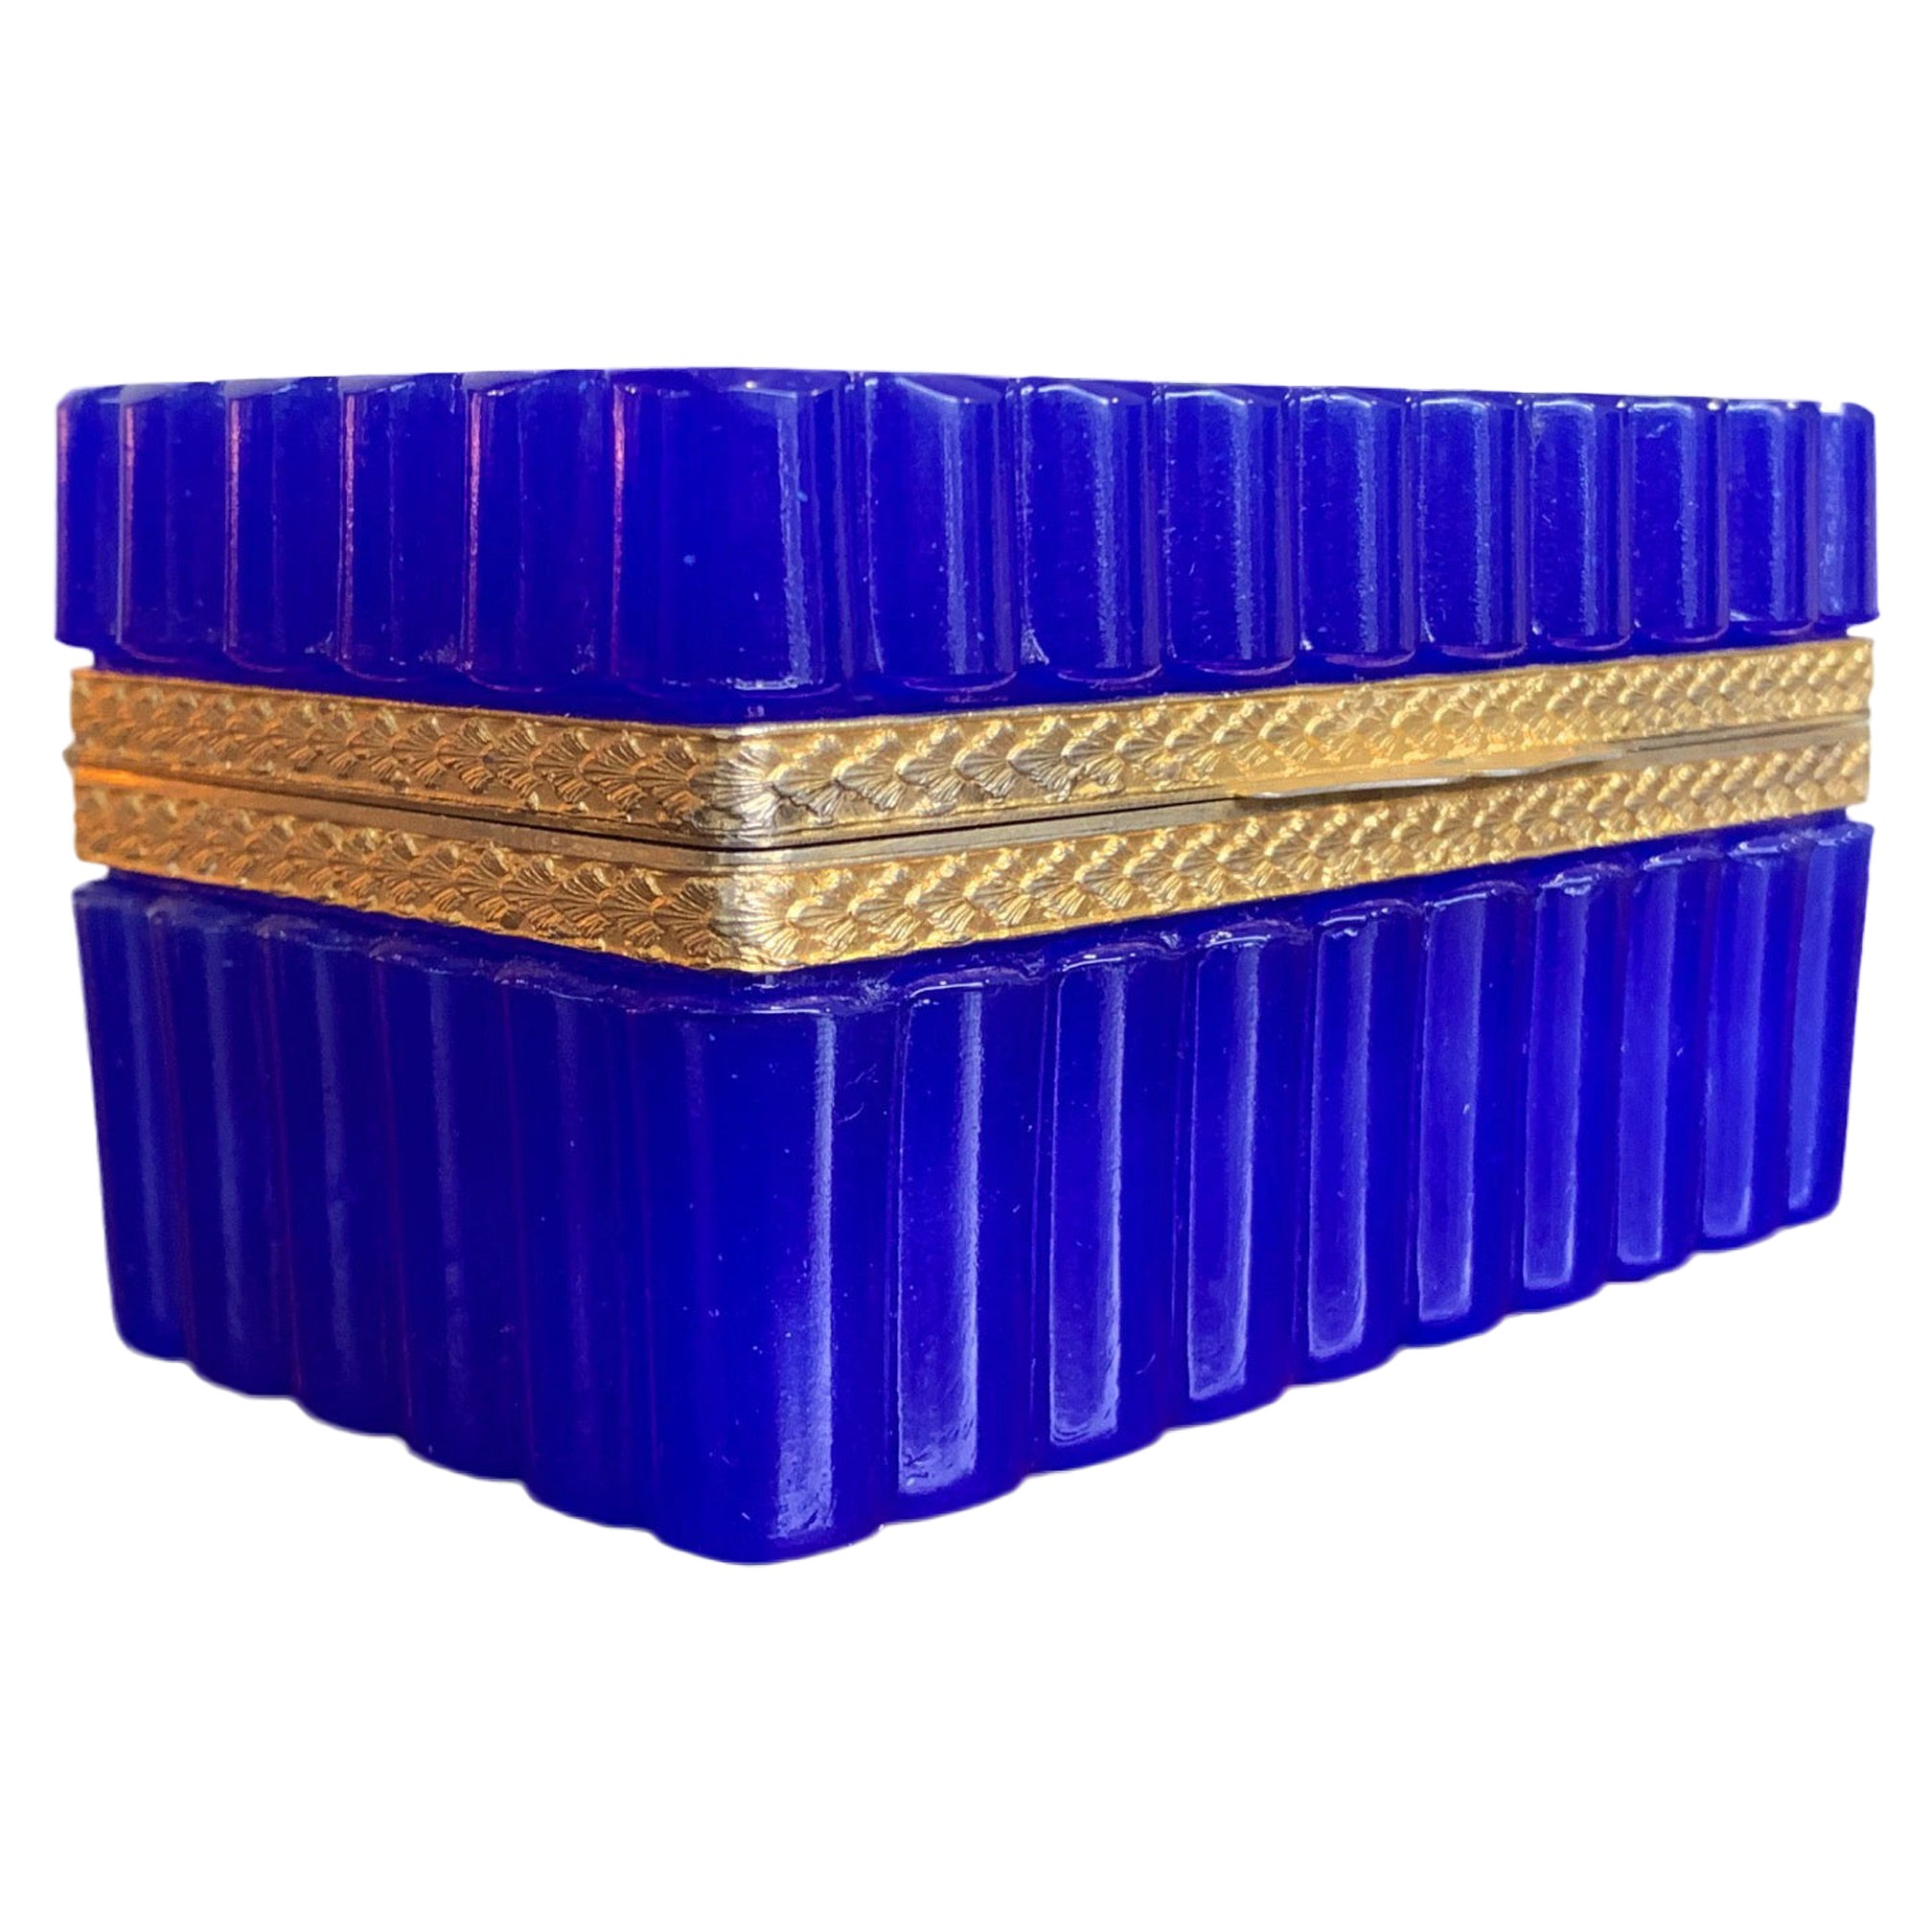 Stunning 1950s Cobalt Blue Murano Glass Hinged Jewelry Box by Cendese, Italy